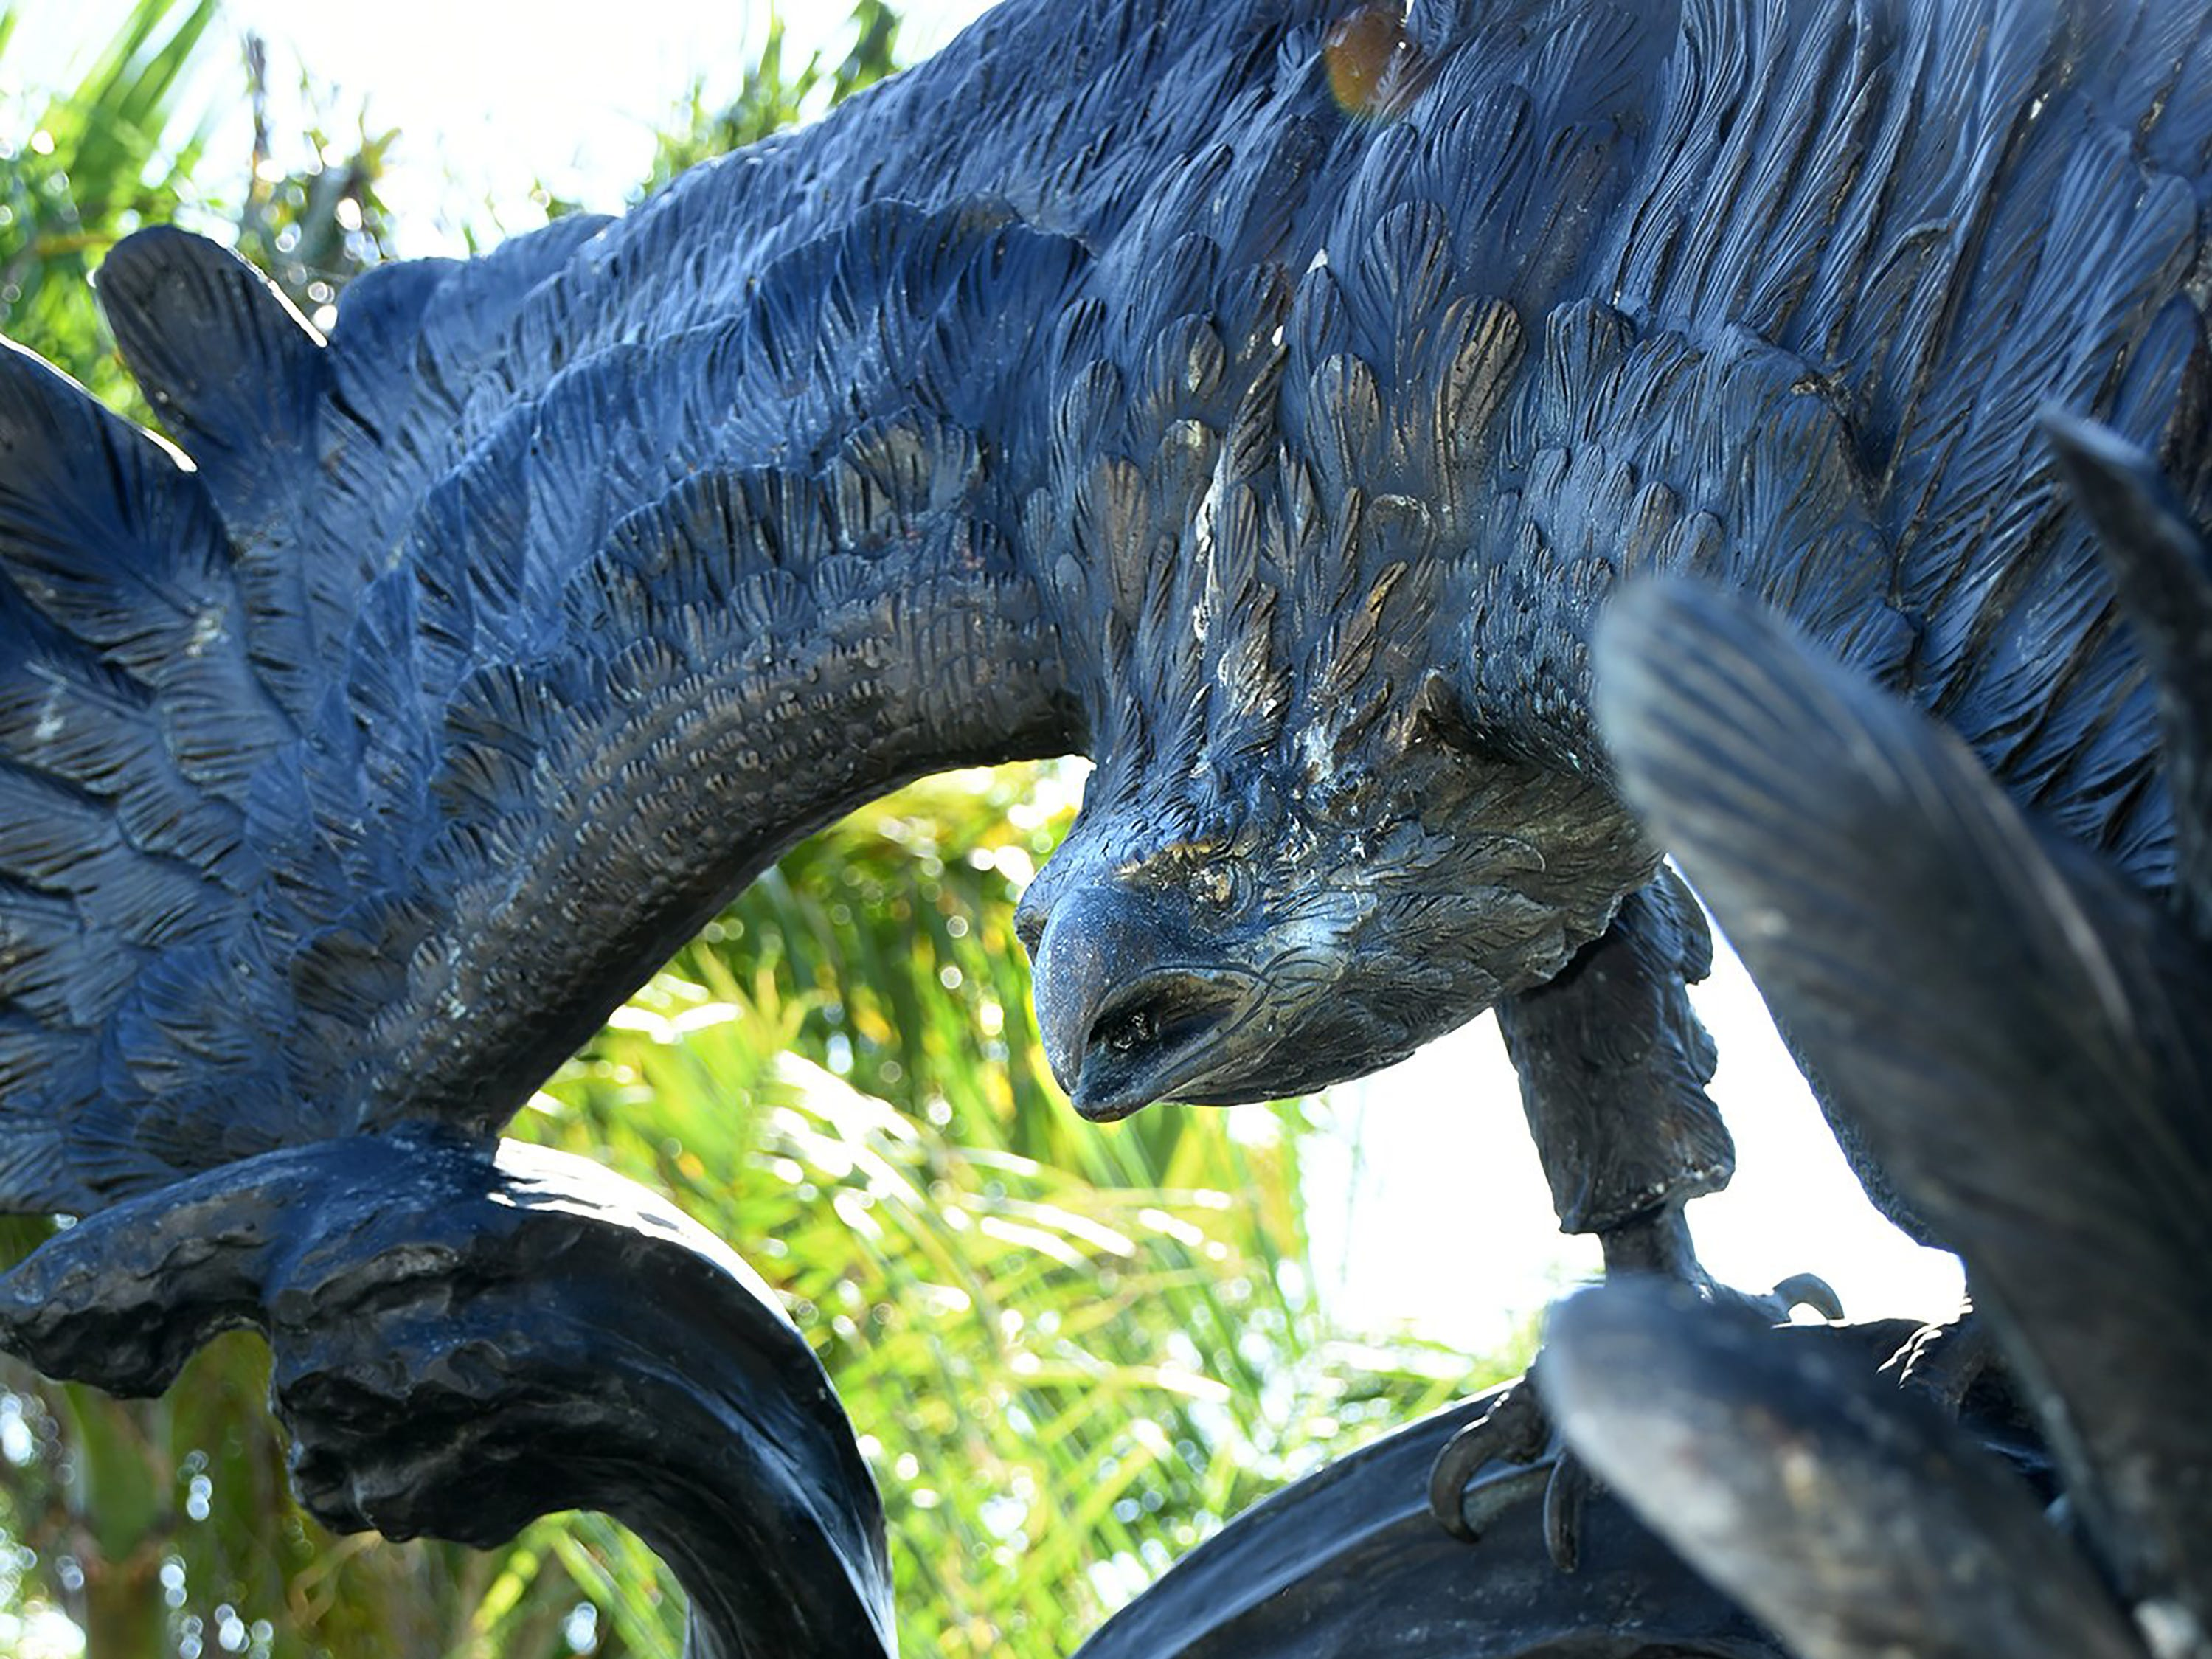 Friday morning, the Marco Island Foundation for the Arts unveiled a plaque with the names of donors who have contributed to the purchase of the Double Eagle sculpture at Sarazen Park on Marco.